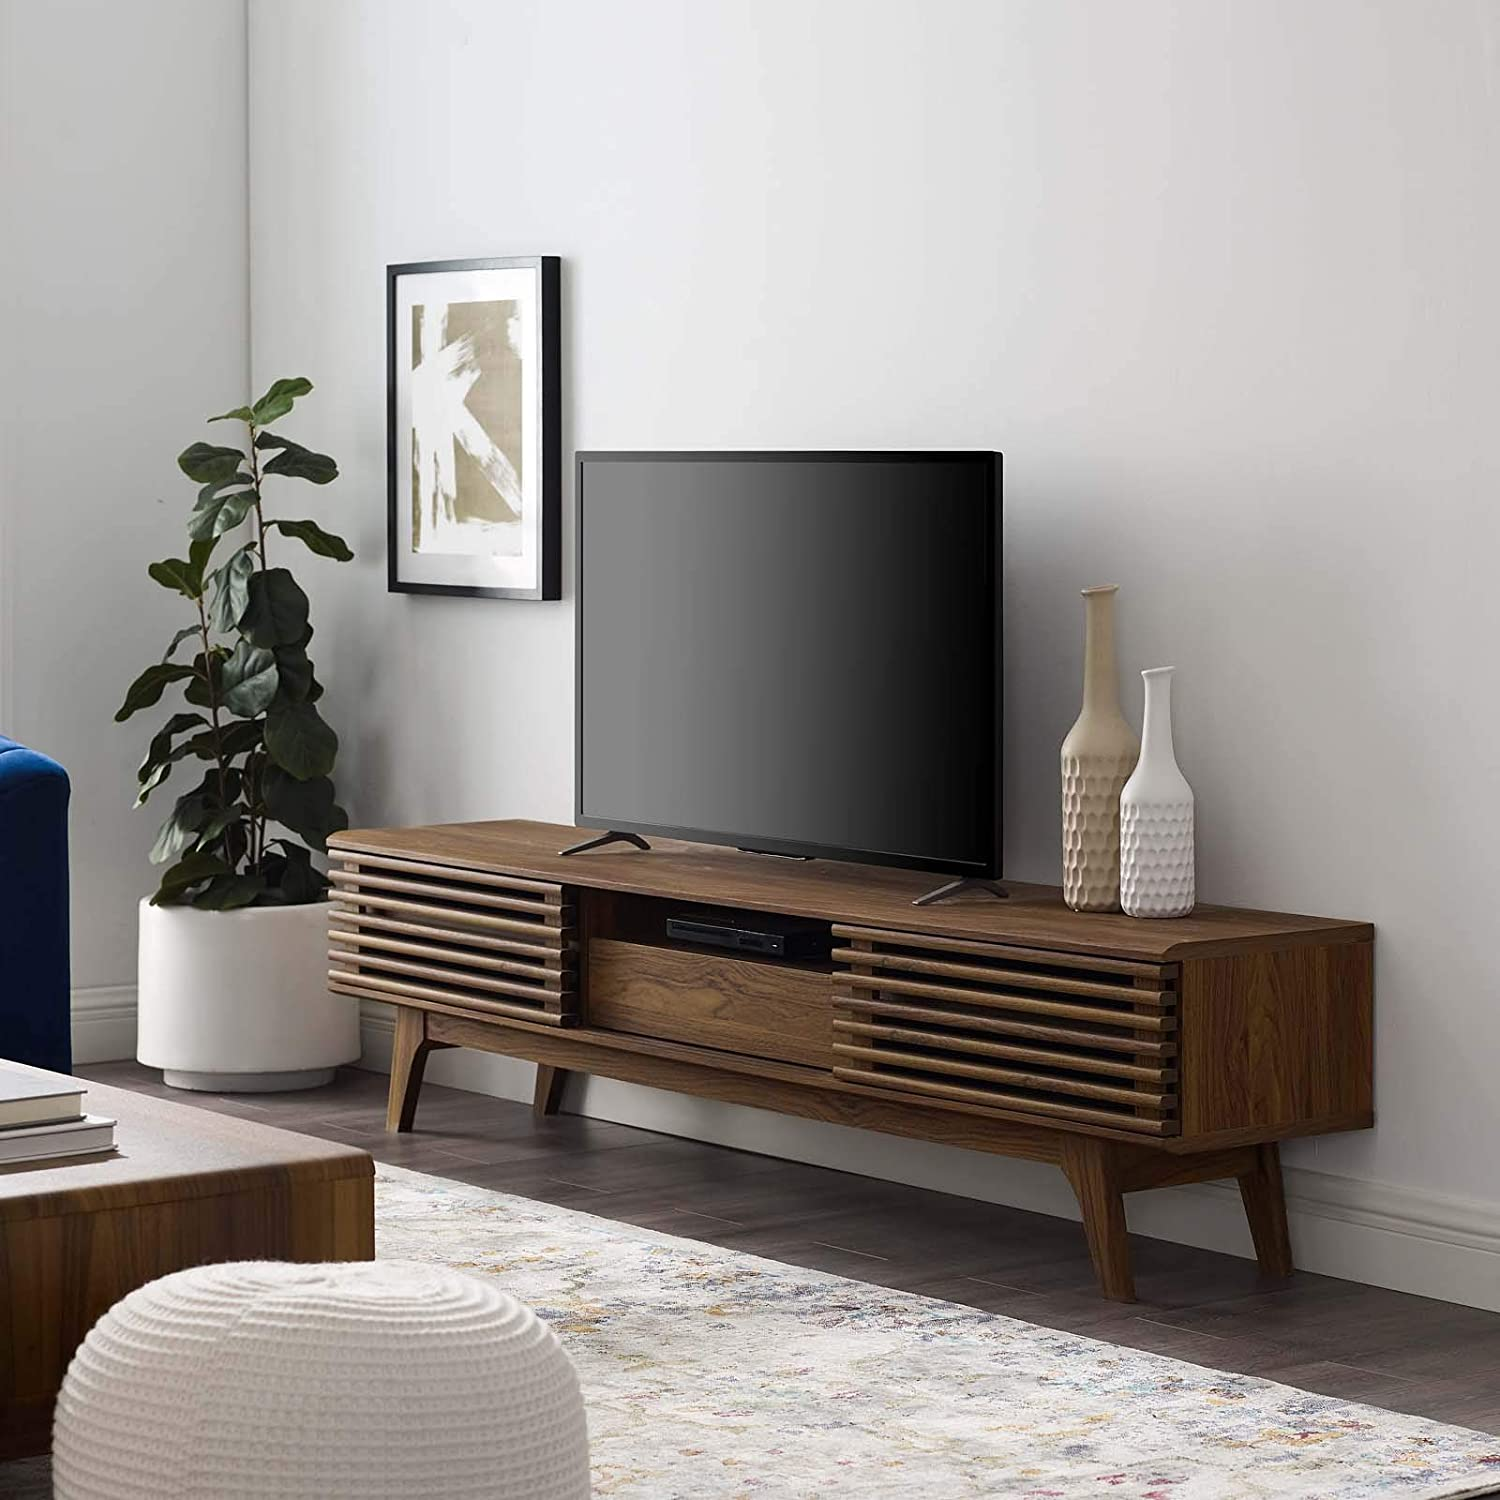 "Modway Render 70"" Mid-Century Modern Low Profile Entertainment TV Stand in Walnut"